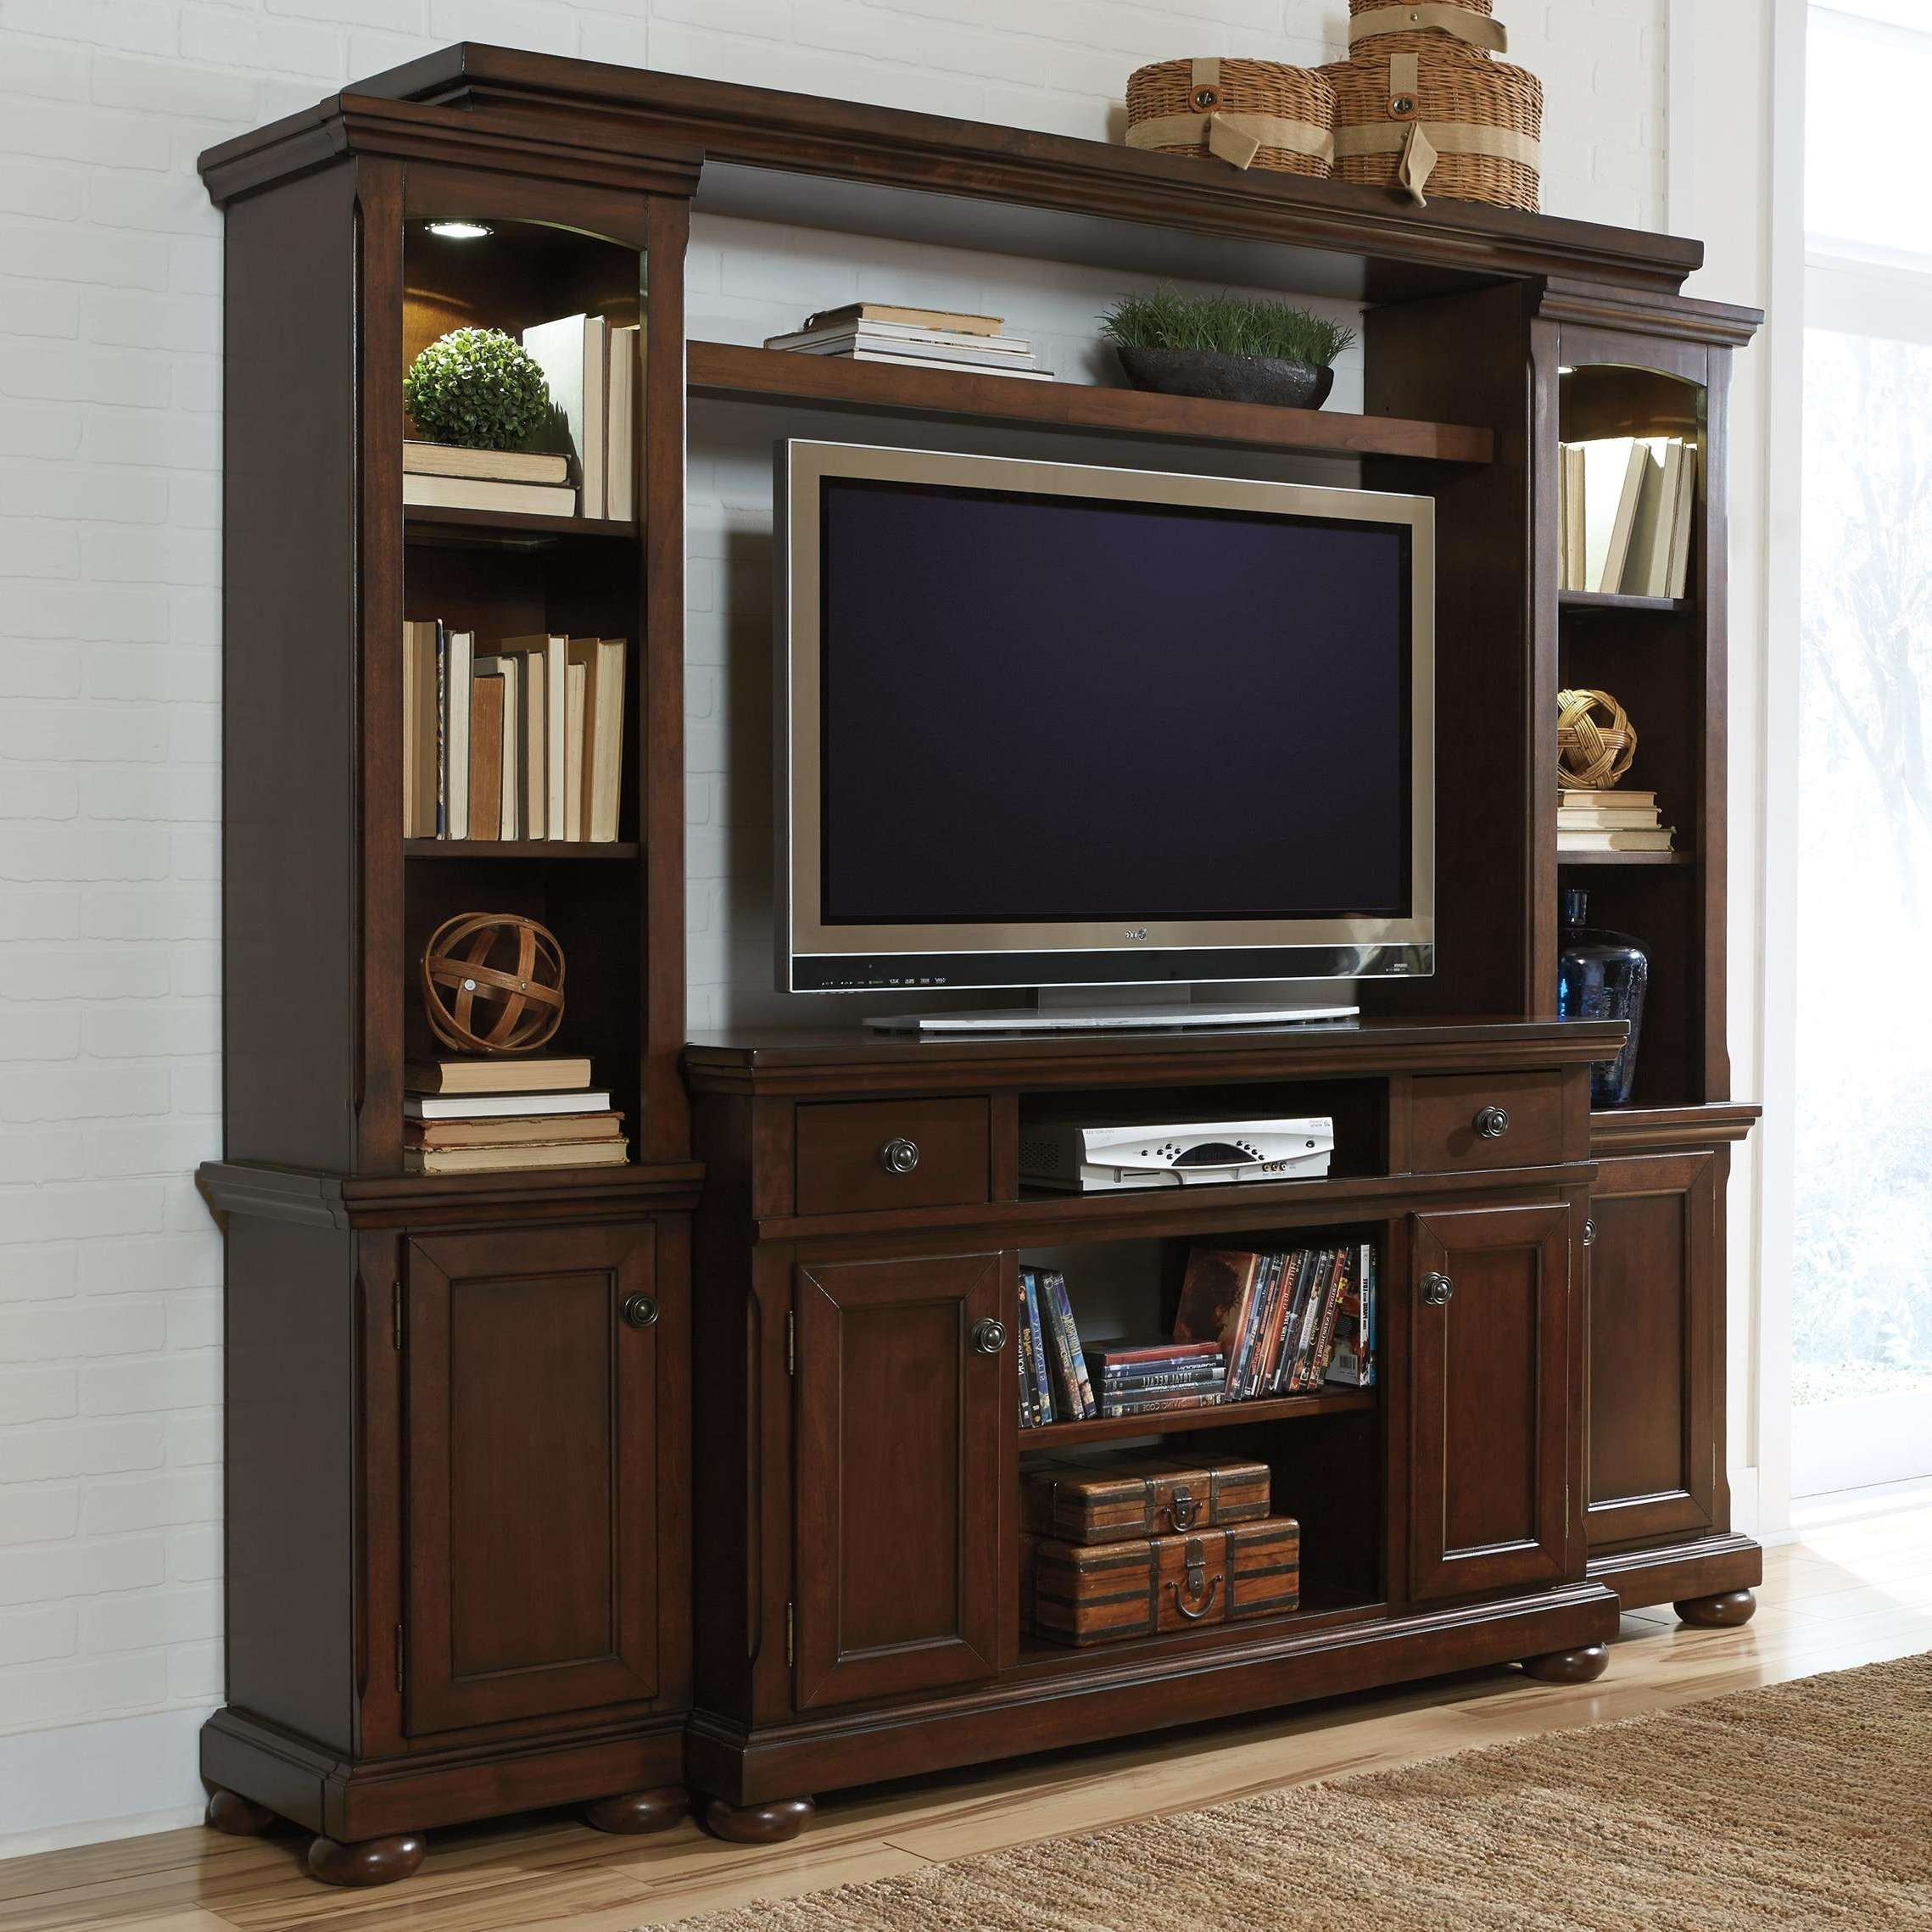 Porter Entertainment Wall Unit W/ Tv Stand, Bridge, And Piers For Large Tv Cabinets (View 15 of 20)